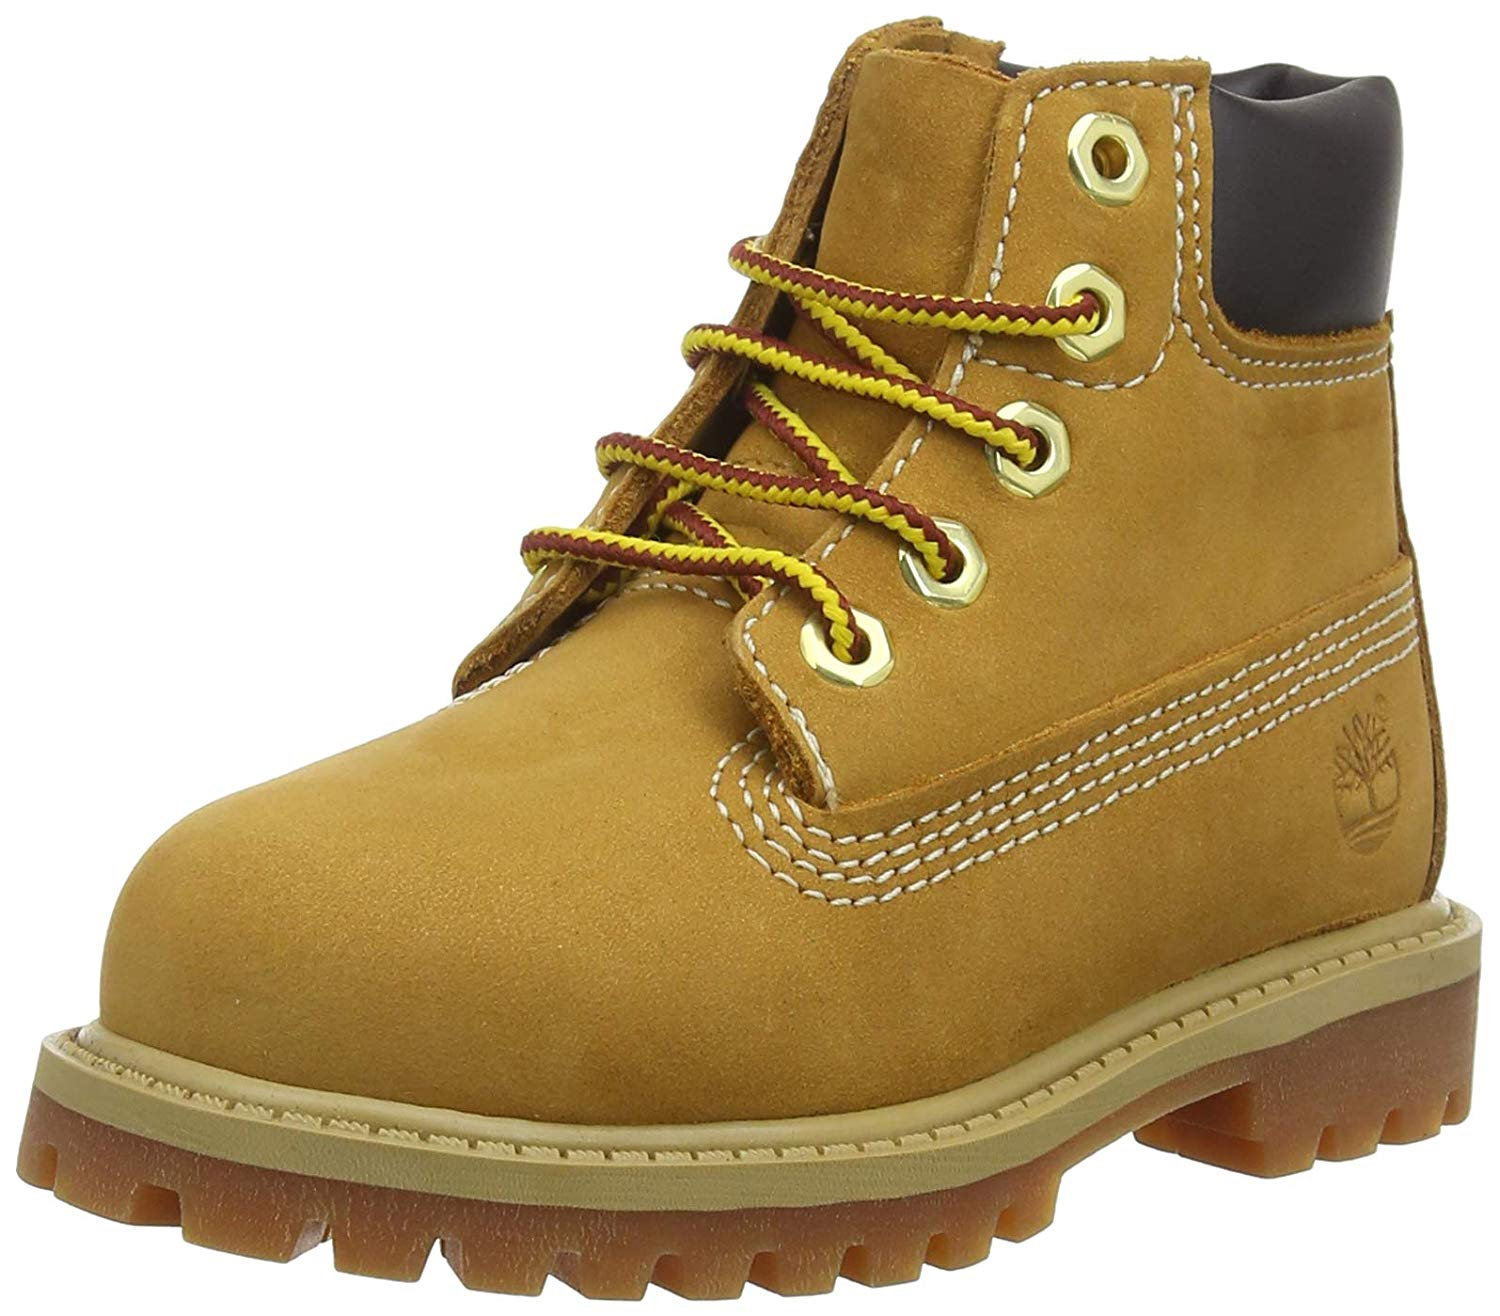 3508be3b70e8 Get Quotations · Timberland Kids  6-Inch Premium Waterproof Boots for  Toddlers